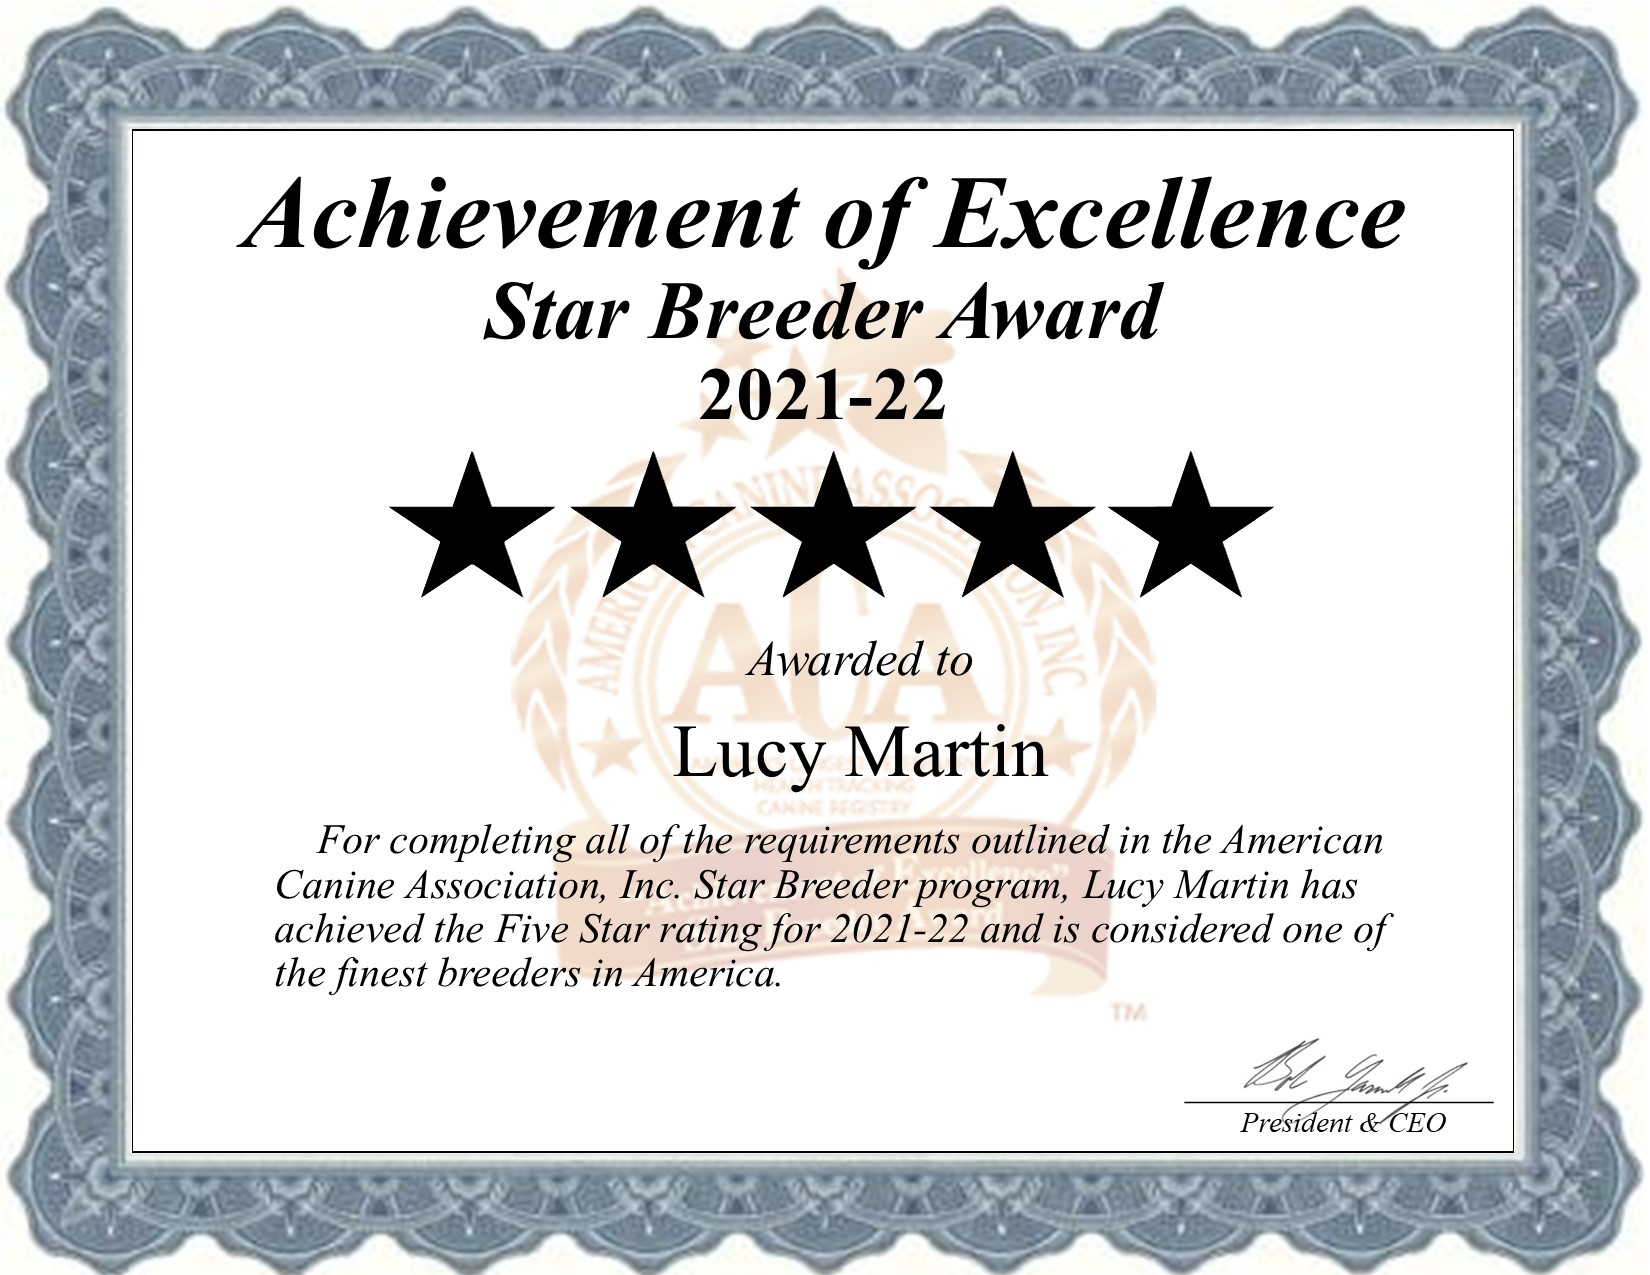 Lucy, Martin, dog, breeder, star, certificate, Lucy-Martin, East Earl, PA, Pennsylvania, puppy, dog, kennels, mill, puppymill, usda, 5-star, aca, ica, registered, Yorkshire, terrier, Pennsylvania